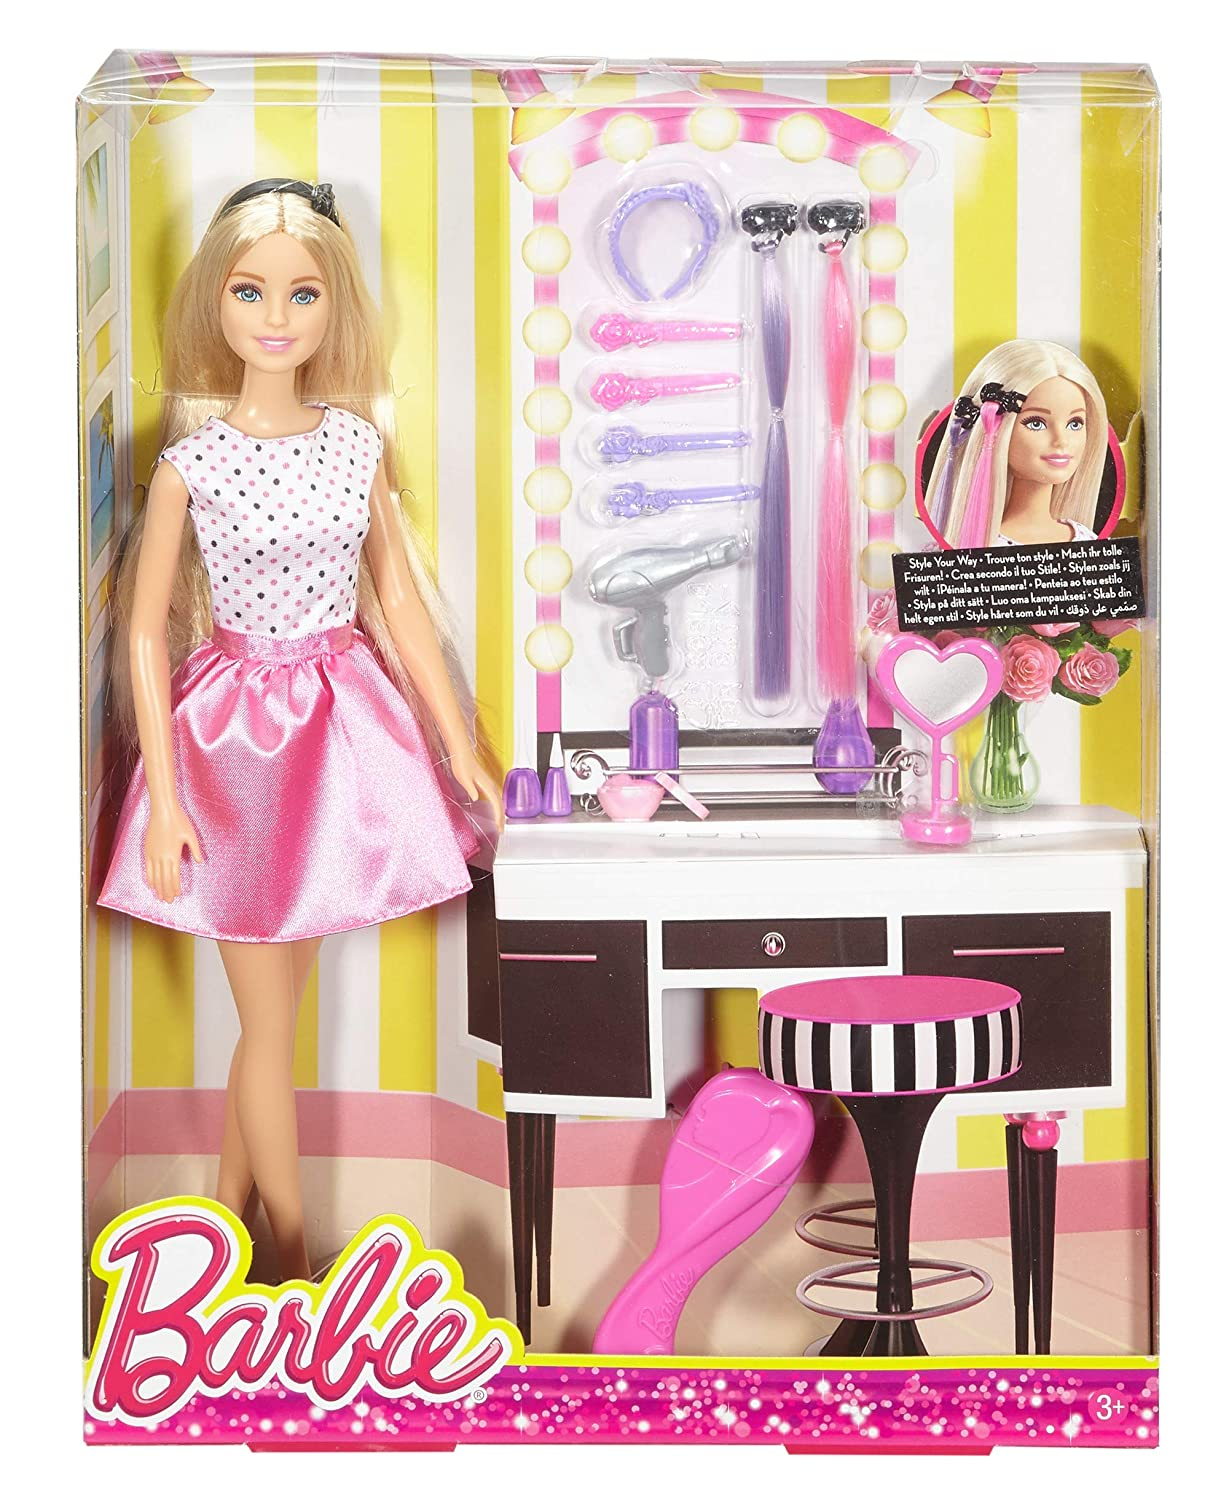 Buy Barbie Djp92 Doll Playset With Hair Styling Accessories Multi Color Online At Low Prices In India Amazon In